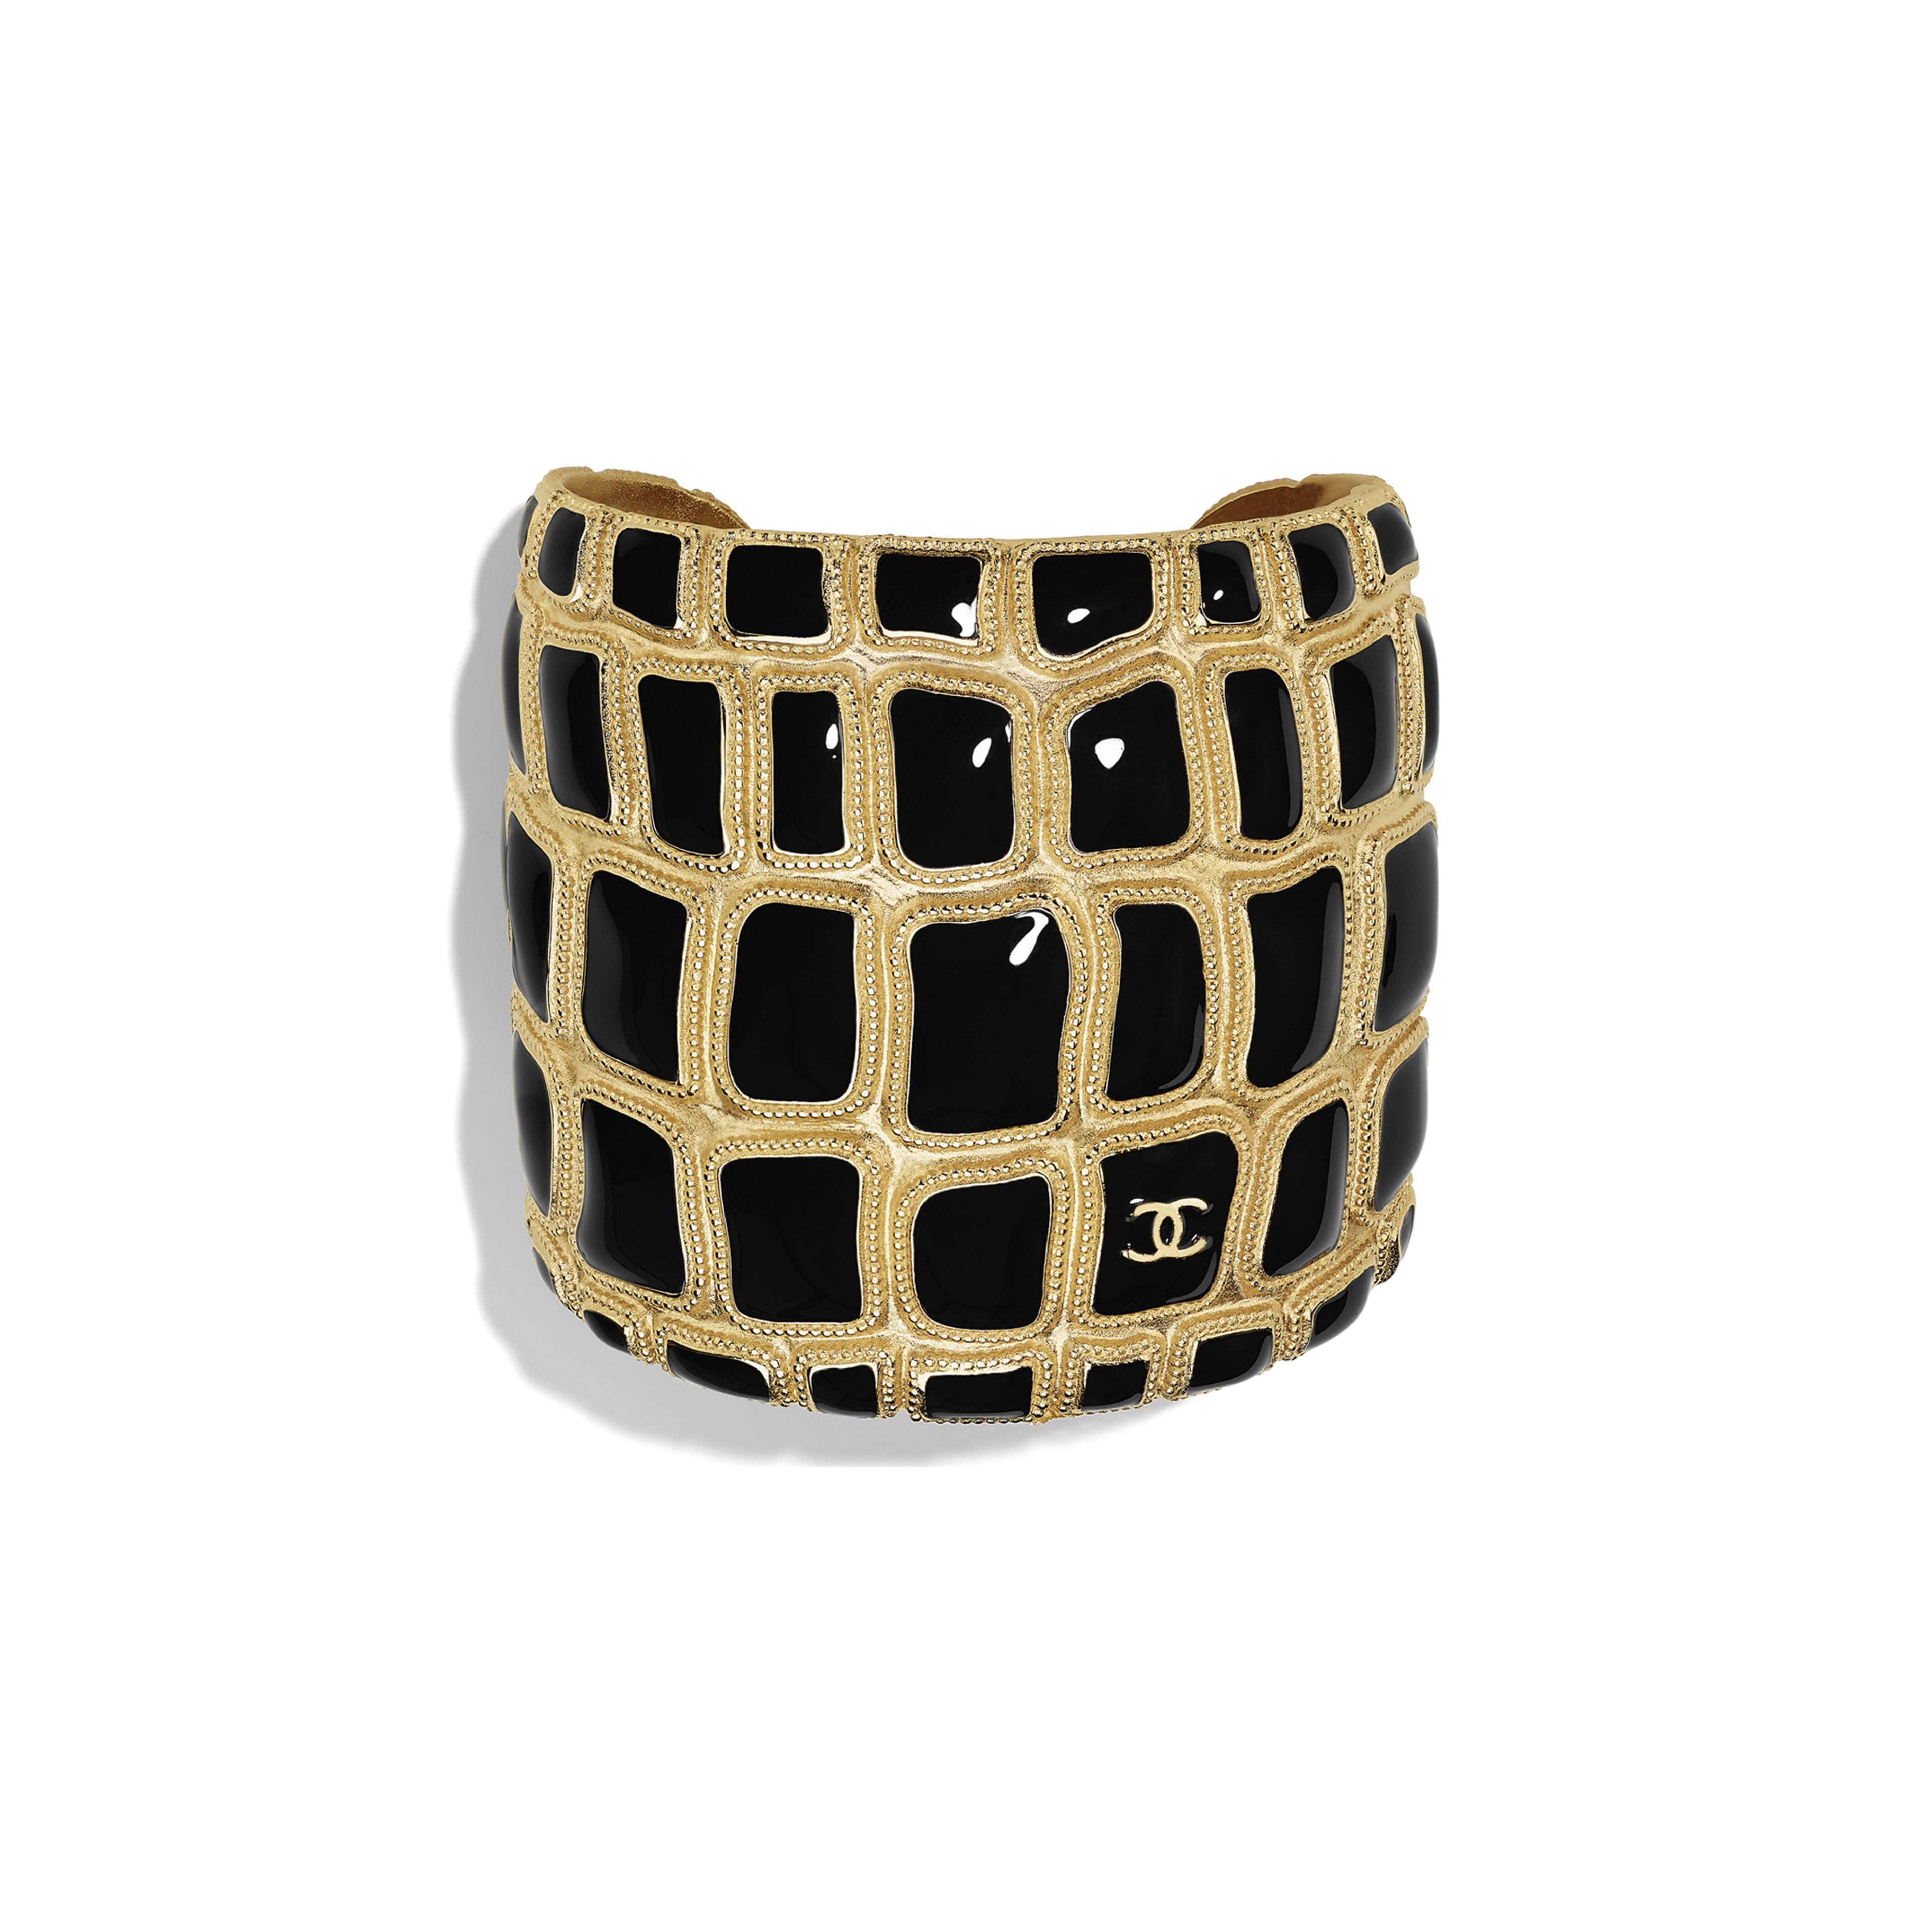 Cuff - Gold & Black - Metal & Resin - Default view - see full sized version